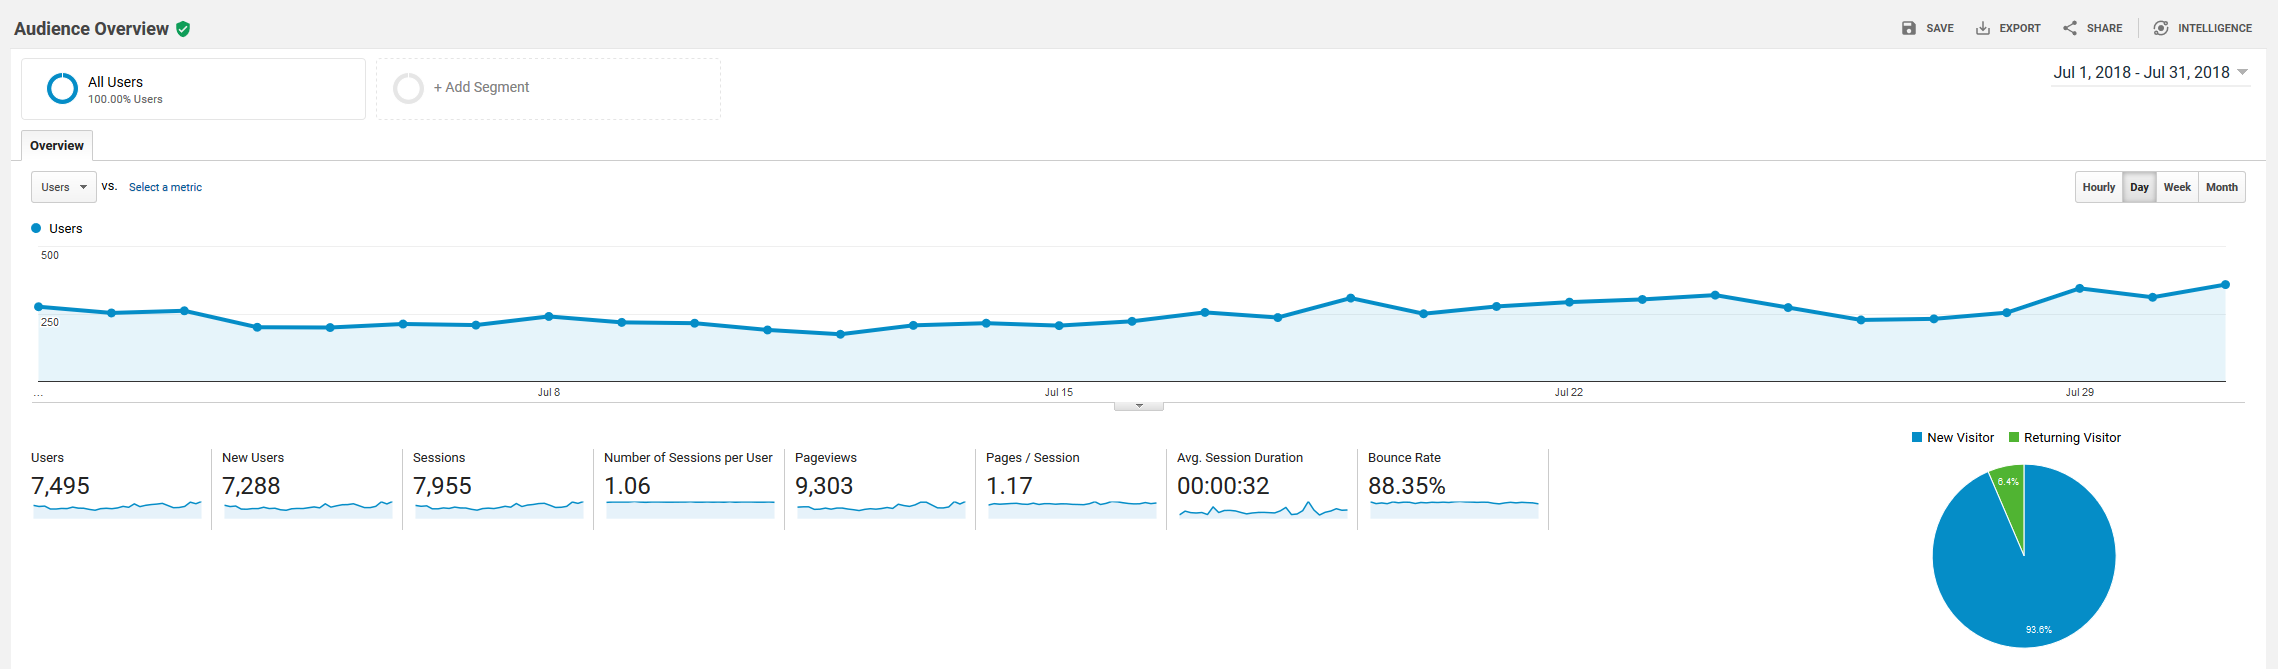 July 2018 Google Analytics roseclearfield.com | https://www.roseclearfield.com